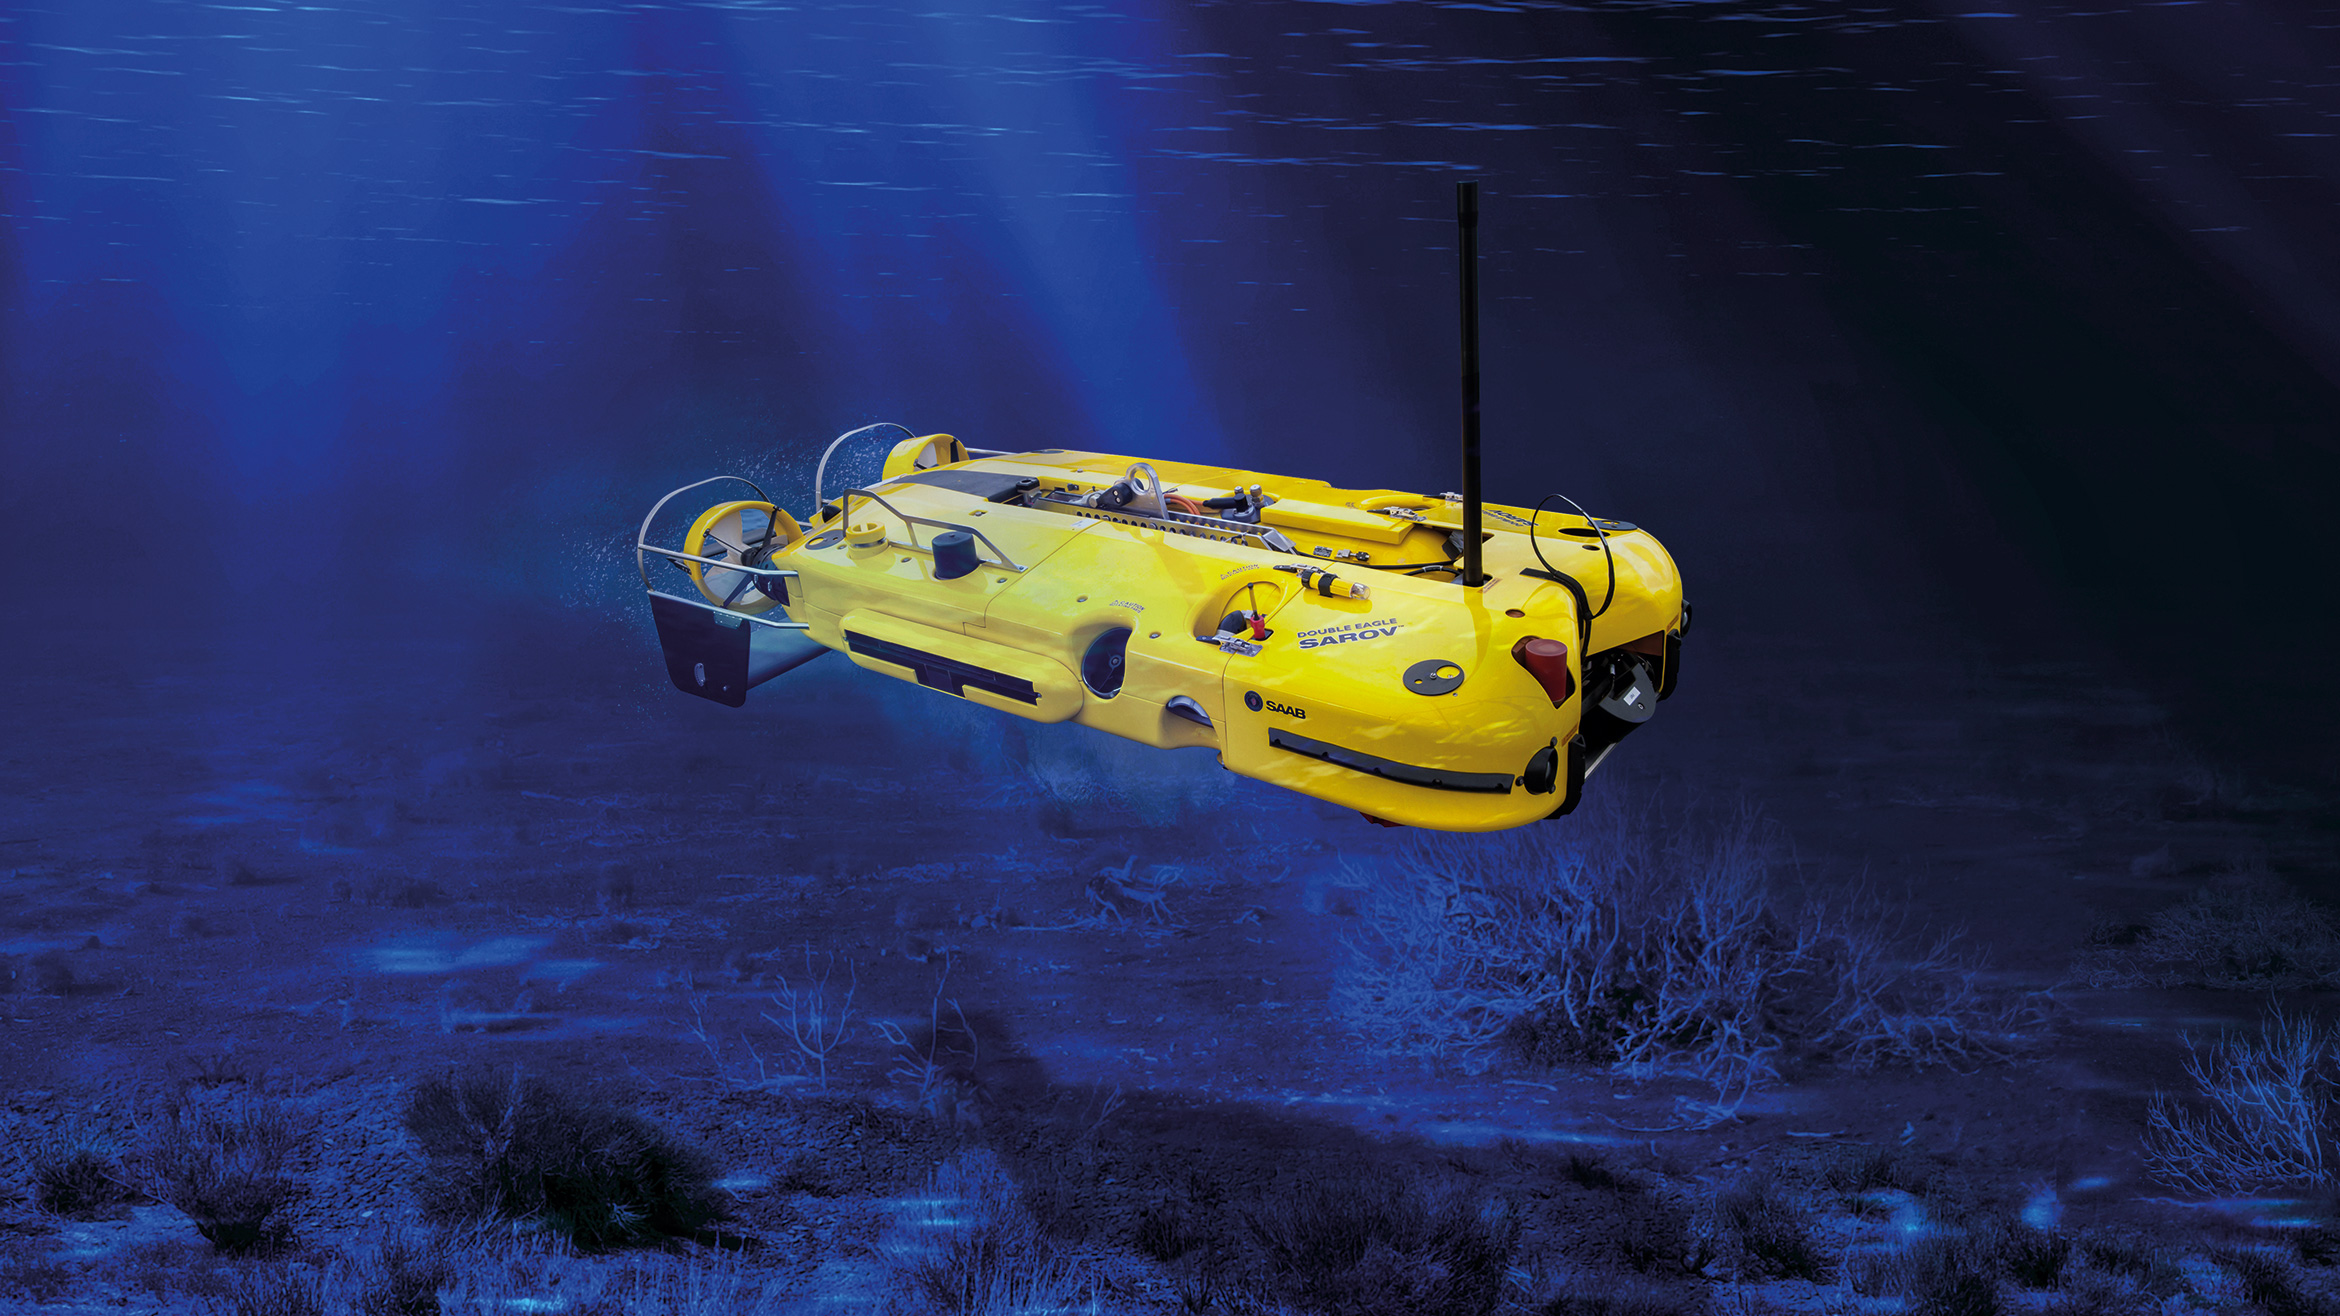 The Sonardyne Solstice side-scan sonar